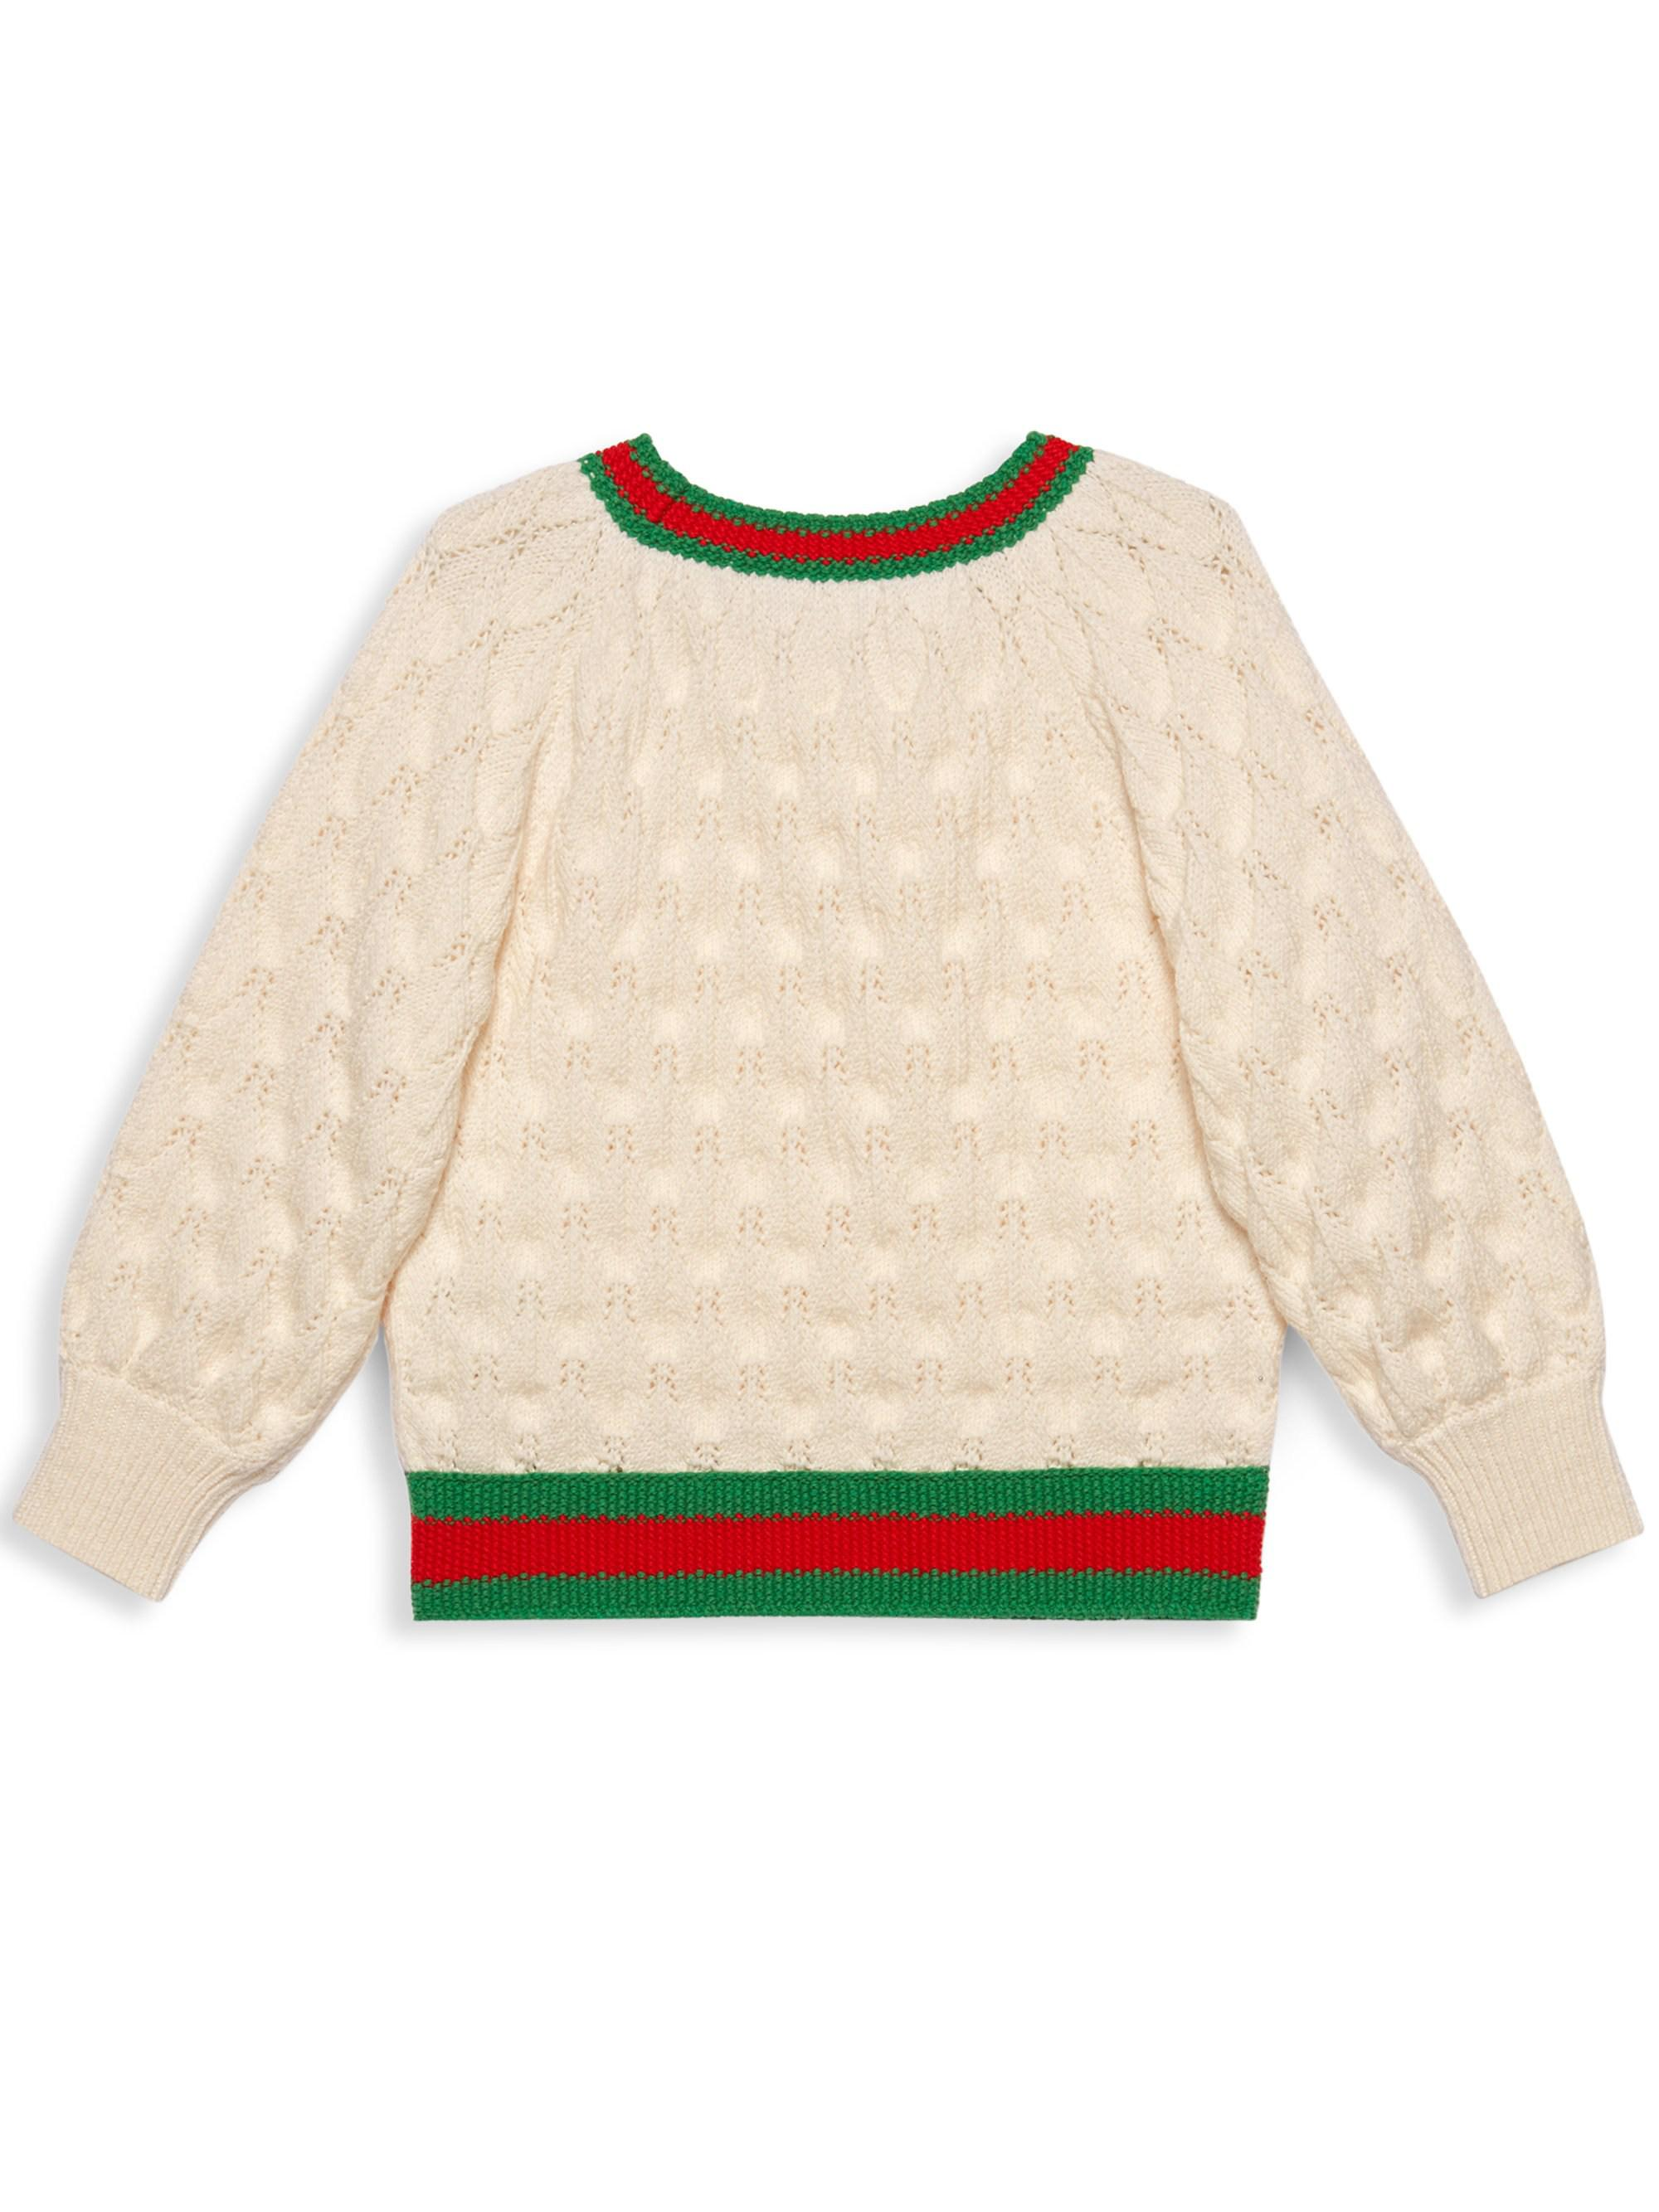 d71e034ed9b Gucci Little Girl's & Girl's Wool Knit Crewneck Sweater - White Iris in  White - Save 40% - Lyst